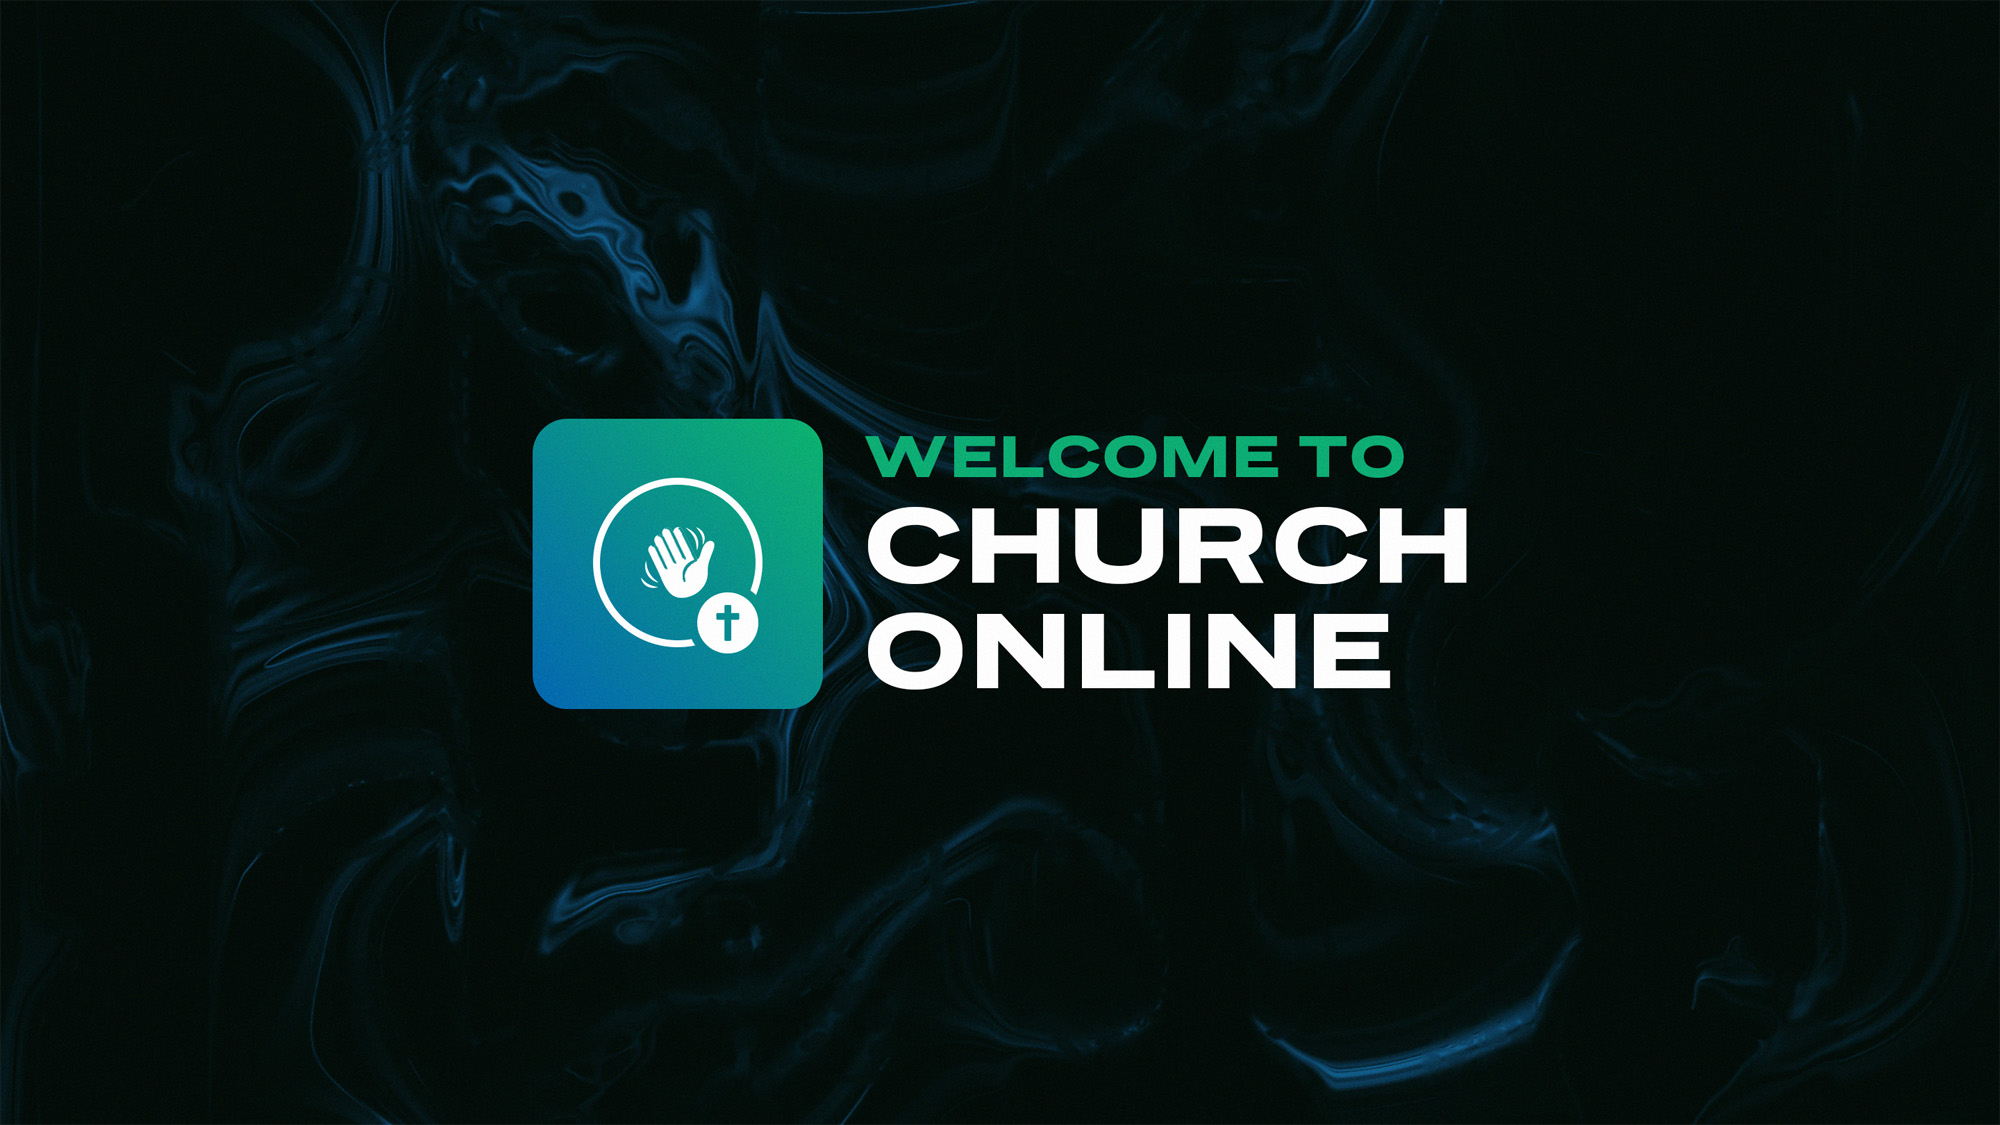 Click here to go to our interactive live service